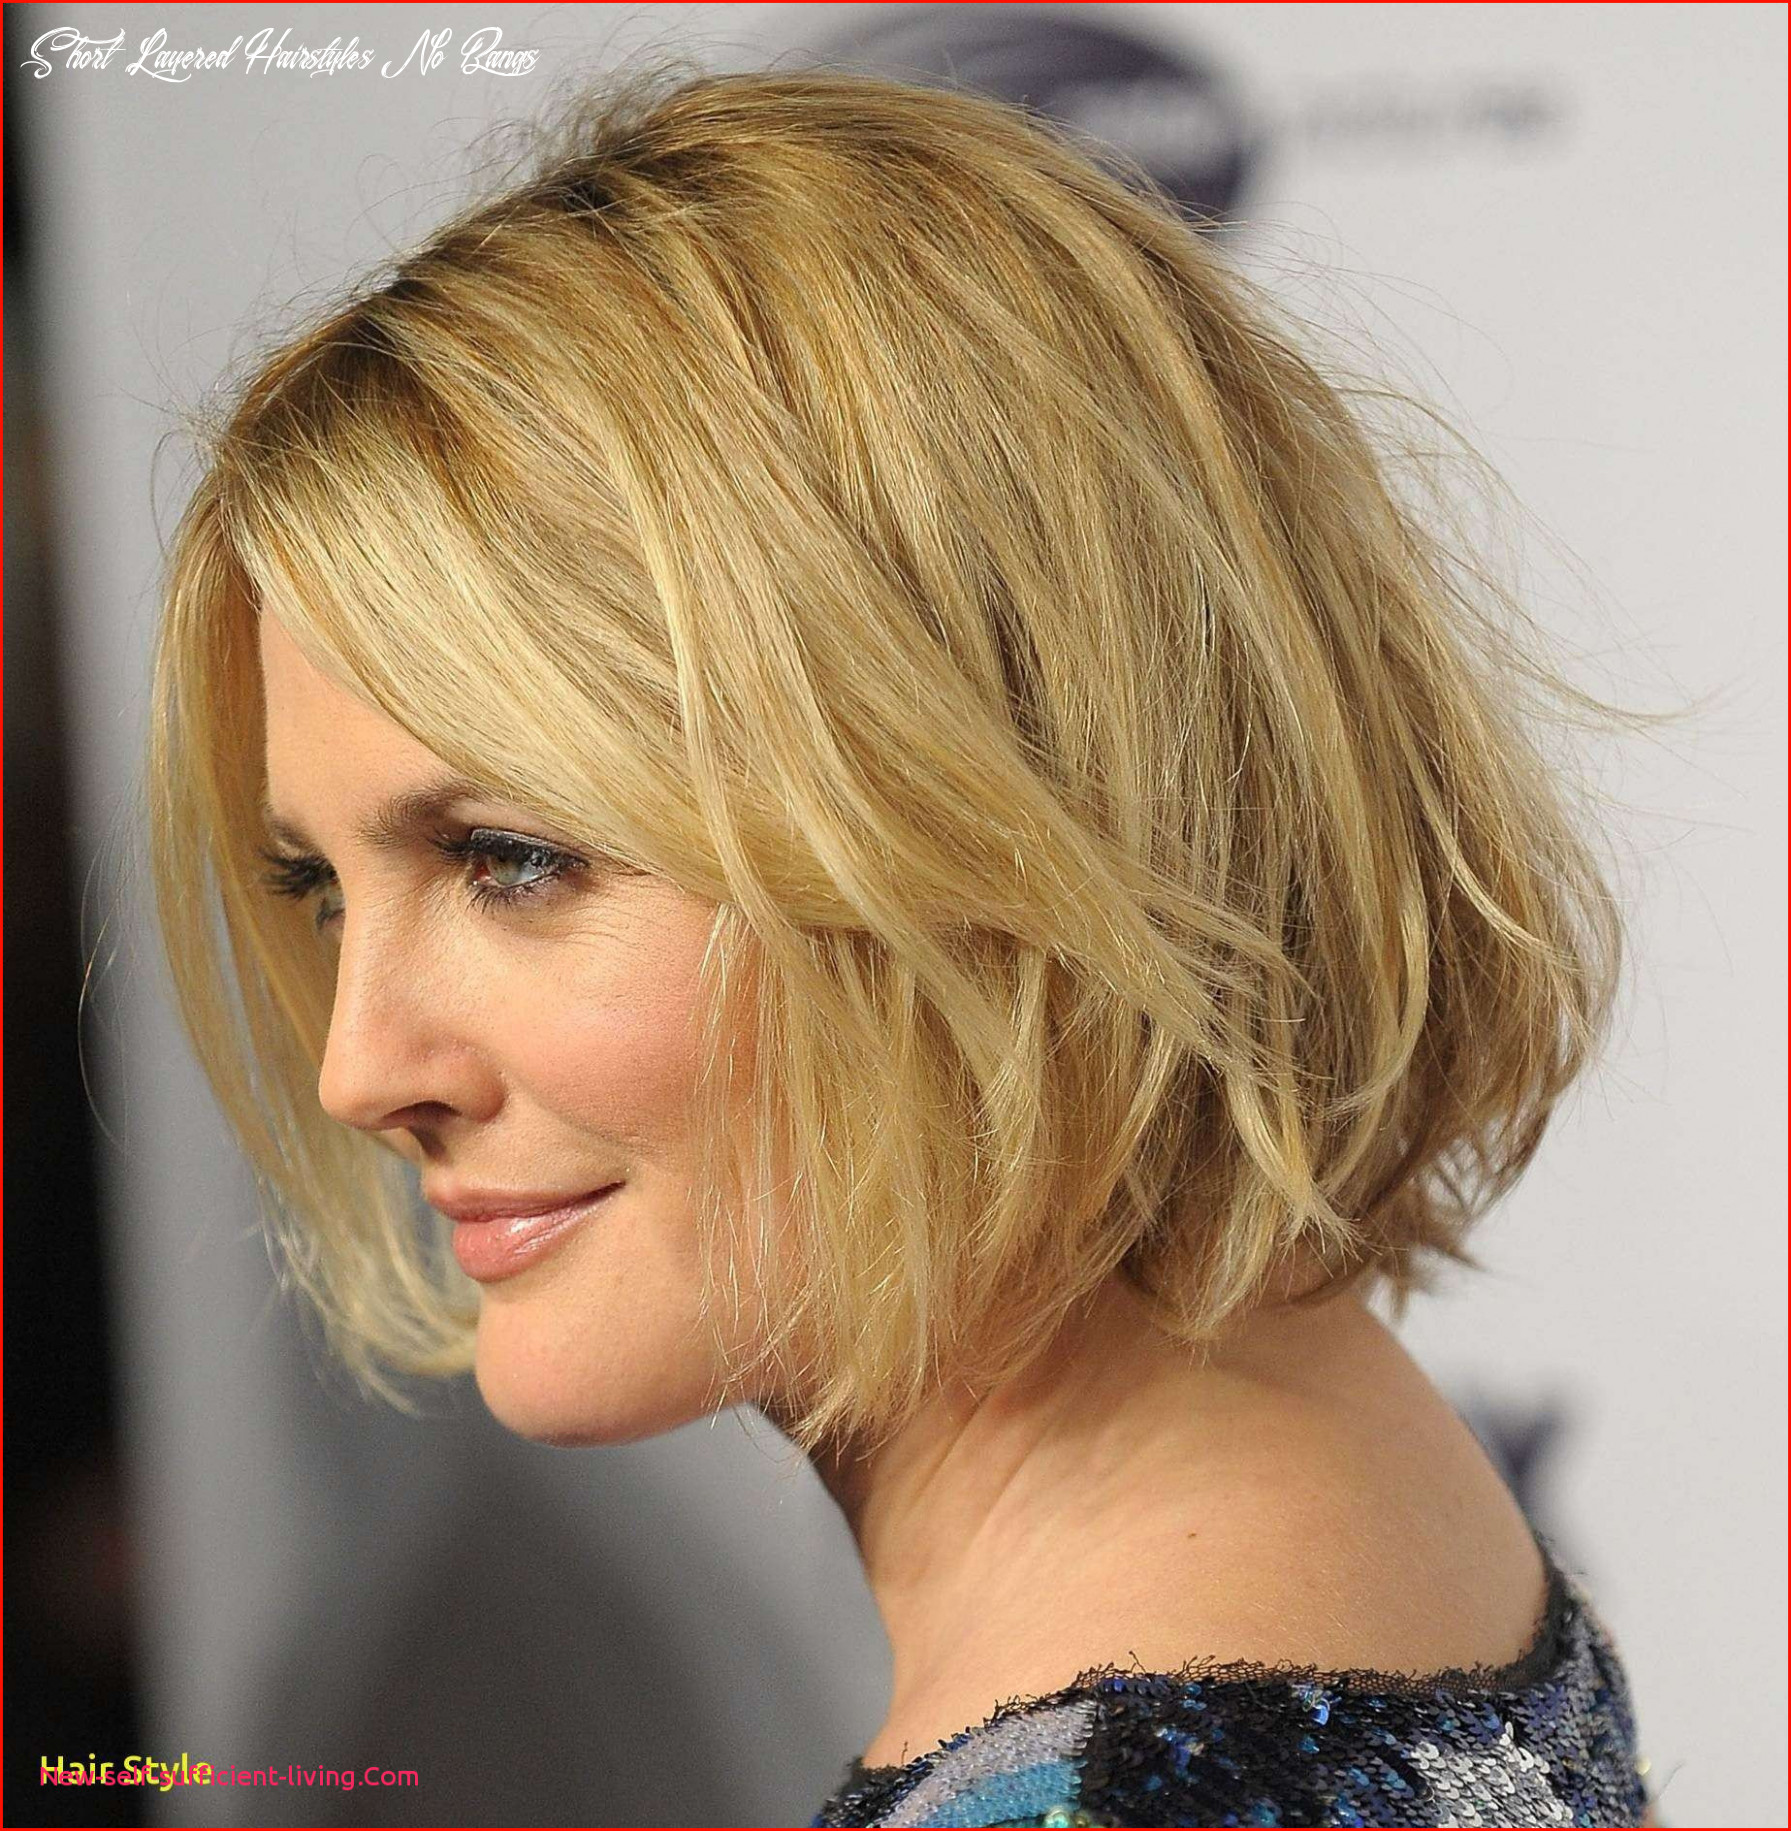 Stylish short hairstyles no bangs images of short hairstyles